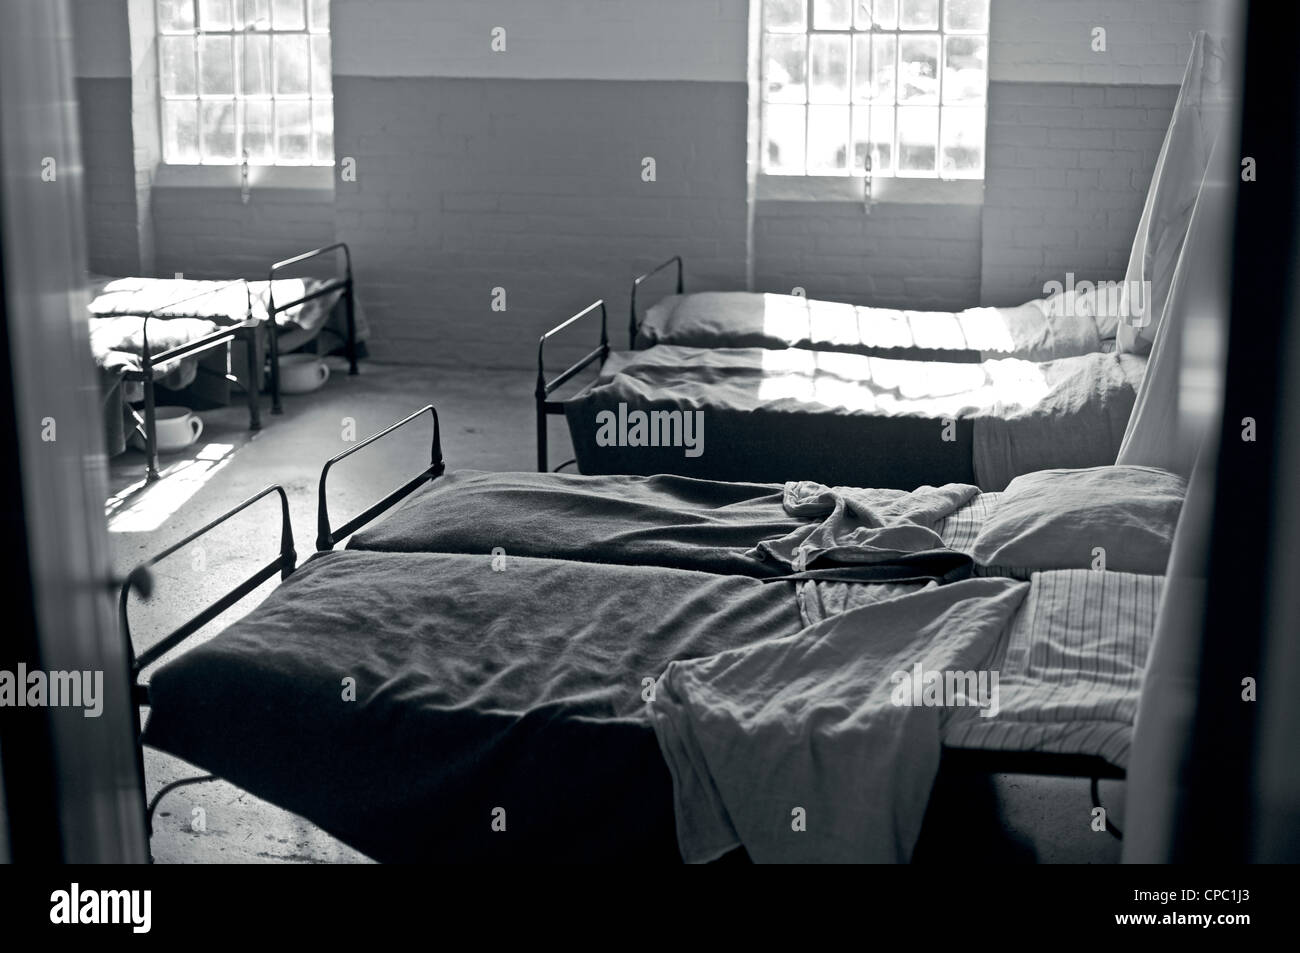 Workhouse Stock Photos & Workhouse Stock Images - Alamy